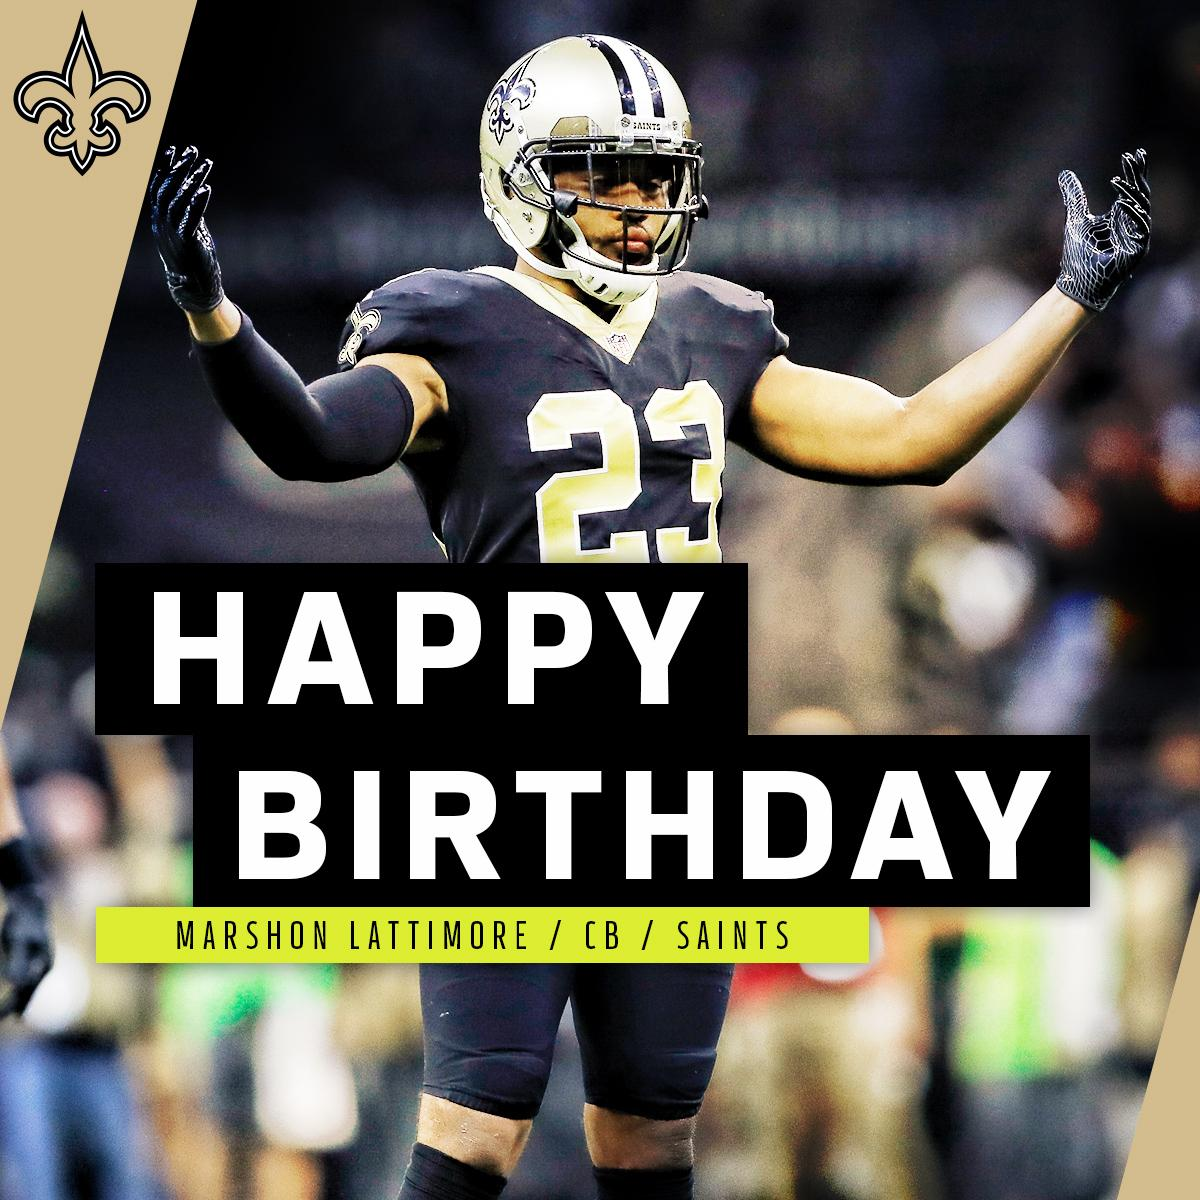 The 2017 Defensive Rookie of the Year. Join us in wishing Marshon Lattimore (@shonrp2) a HAPPY BIRTHDAY! 🎉